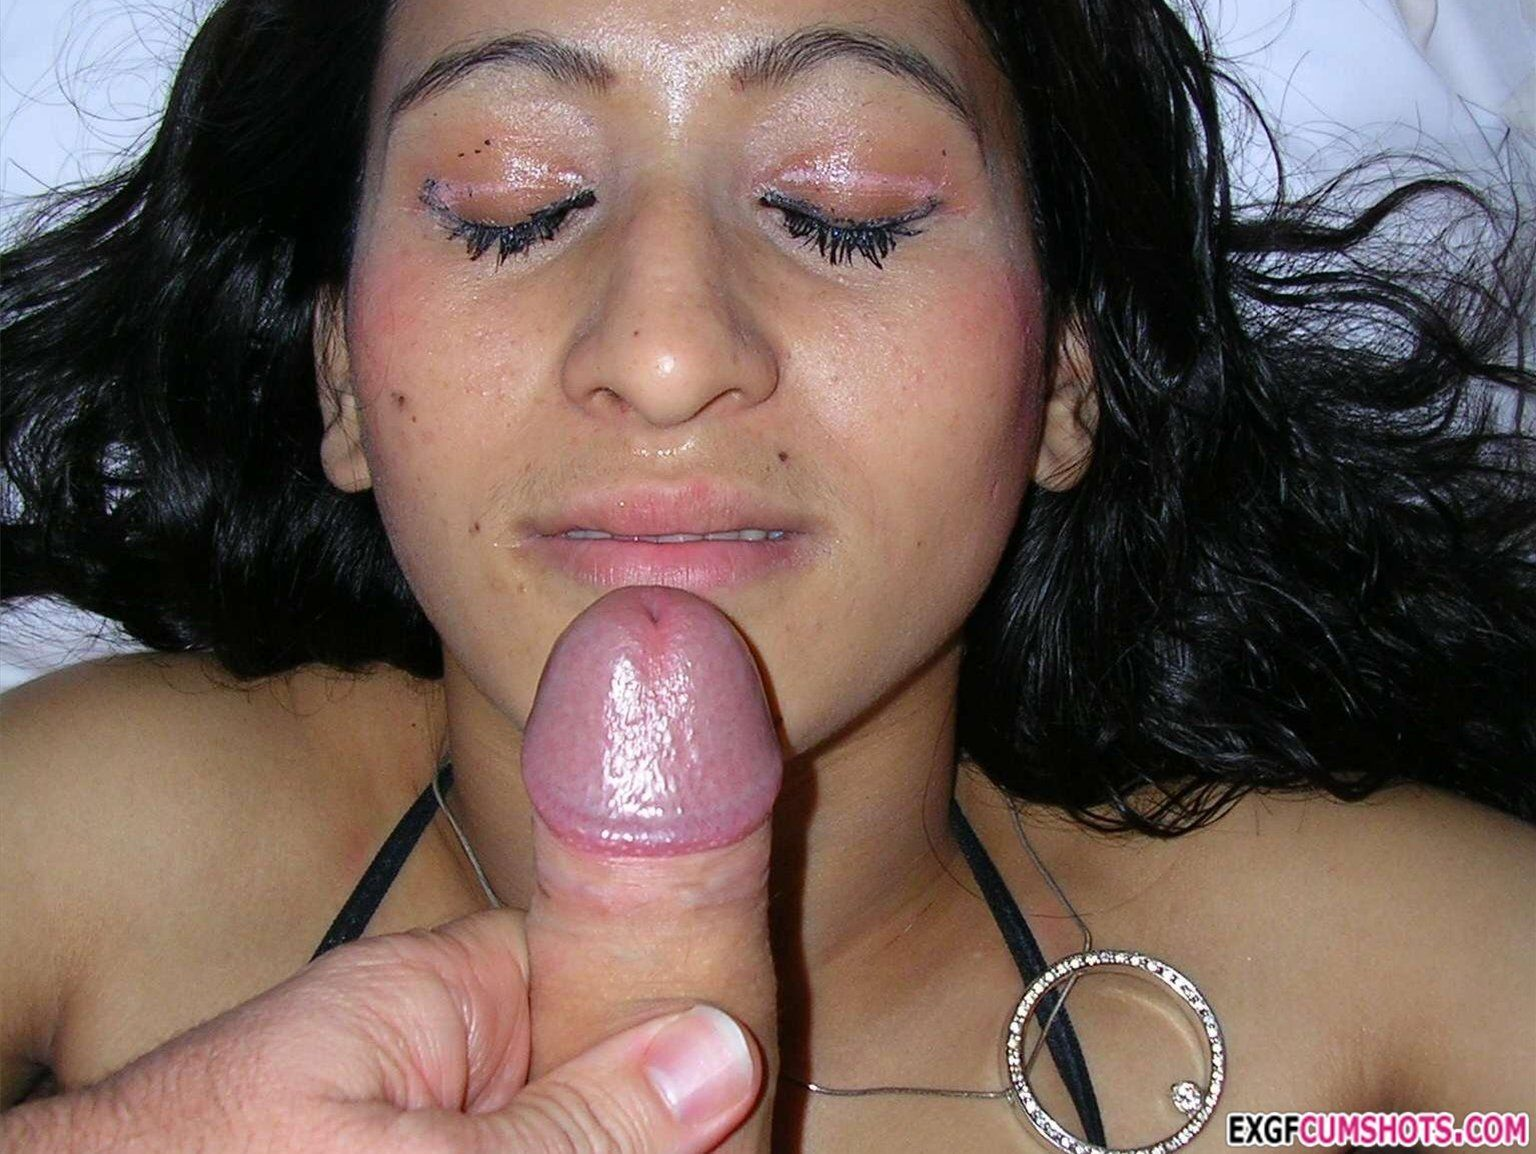 advise you look real gloryhole blowjob compilation mistaken. Understand me?